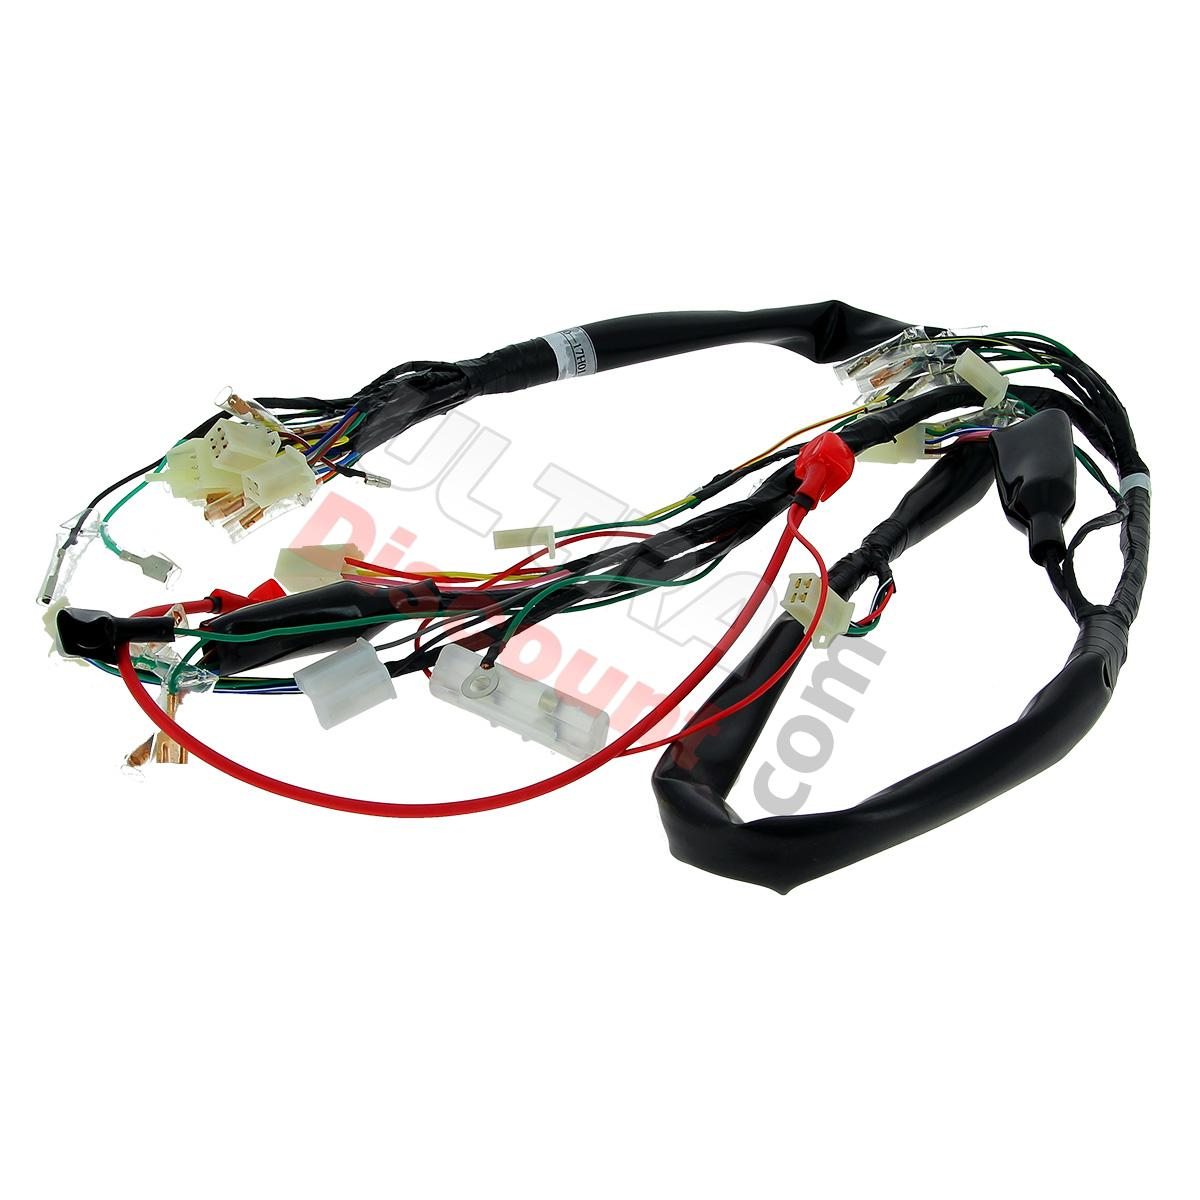 Pieces Dax Skyteam Allumage Faisceau Electrique pour Skymax 50cc ou 125cc wire harness 36610 17h01 for skymax 50cc 125cc (10 2015), ignition pw50 wiring harness at fashall.co